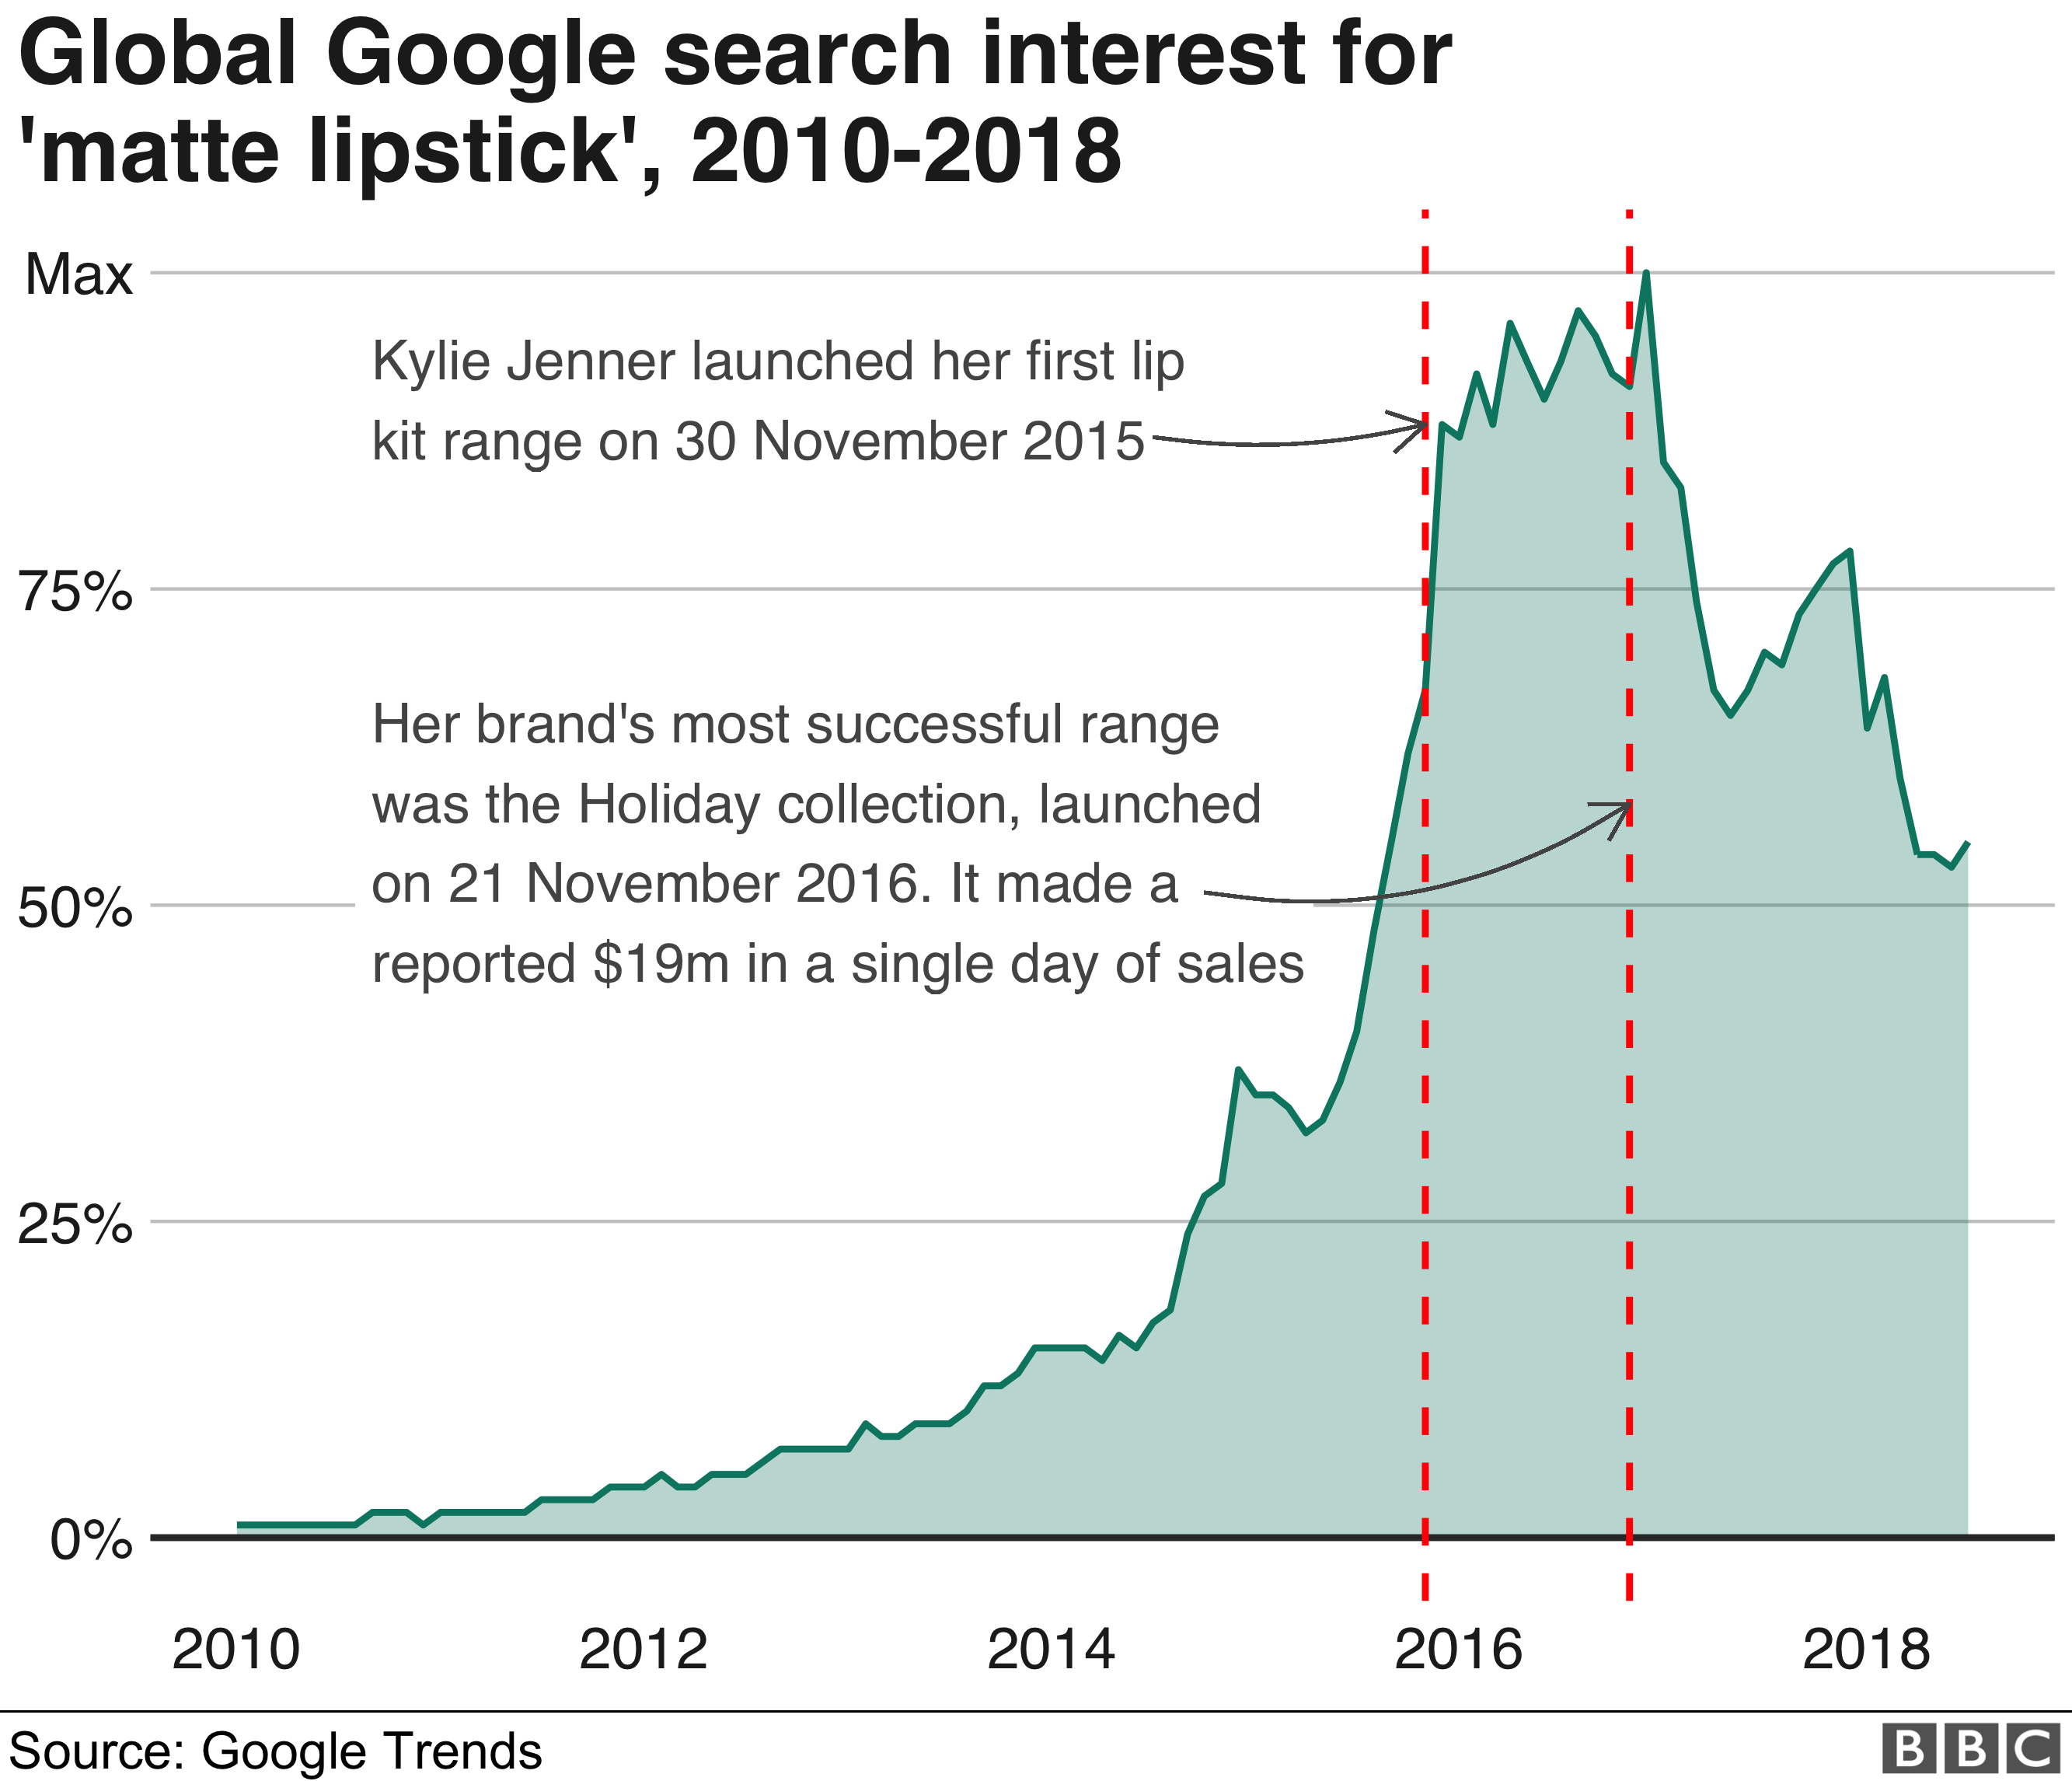 Google search interest in matte lipstick peaked around the time Jenner launched her most successful ranges